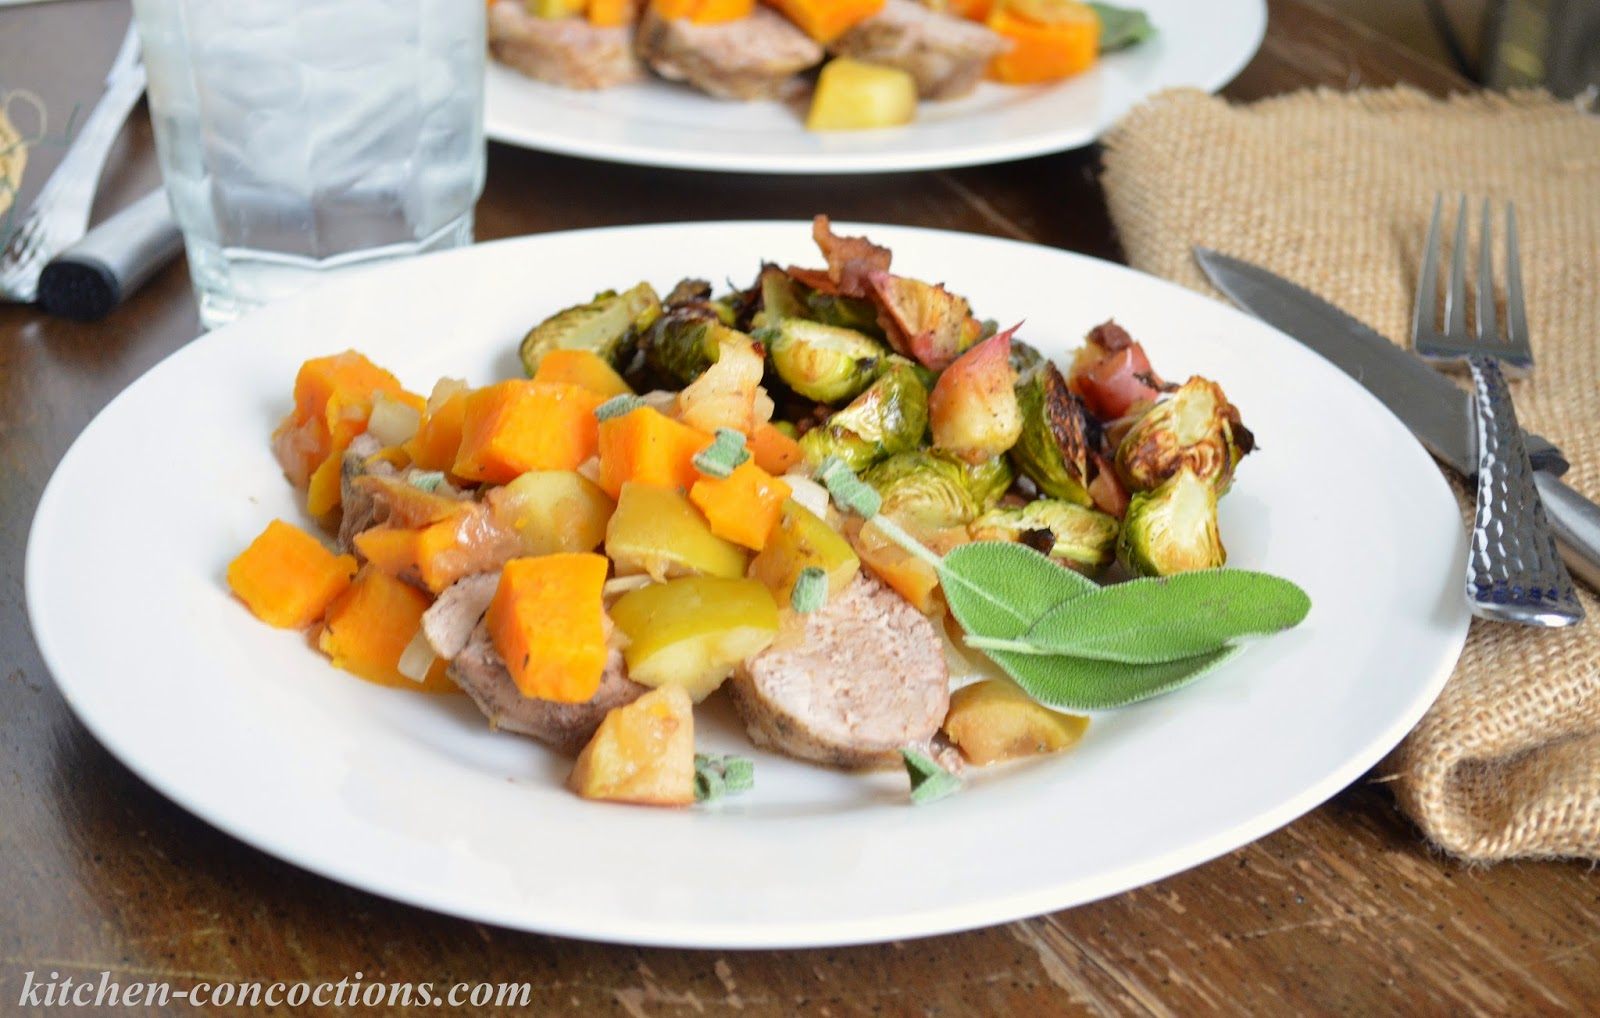 Make This Slow Cooker Pork Loin With Apples And Sweet Potatoes And Bring Dinner Back To The Kitchen Table On A Busy School Night